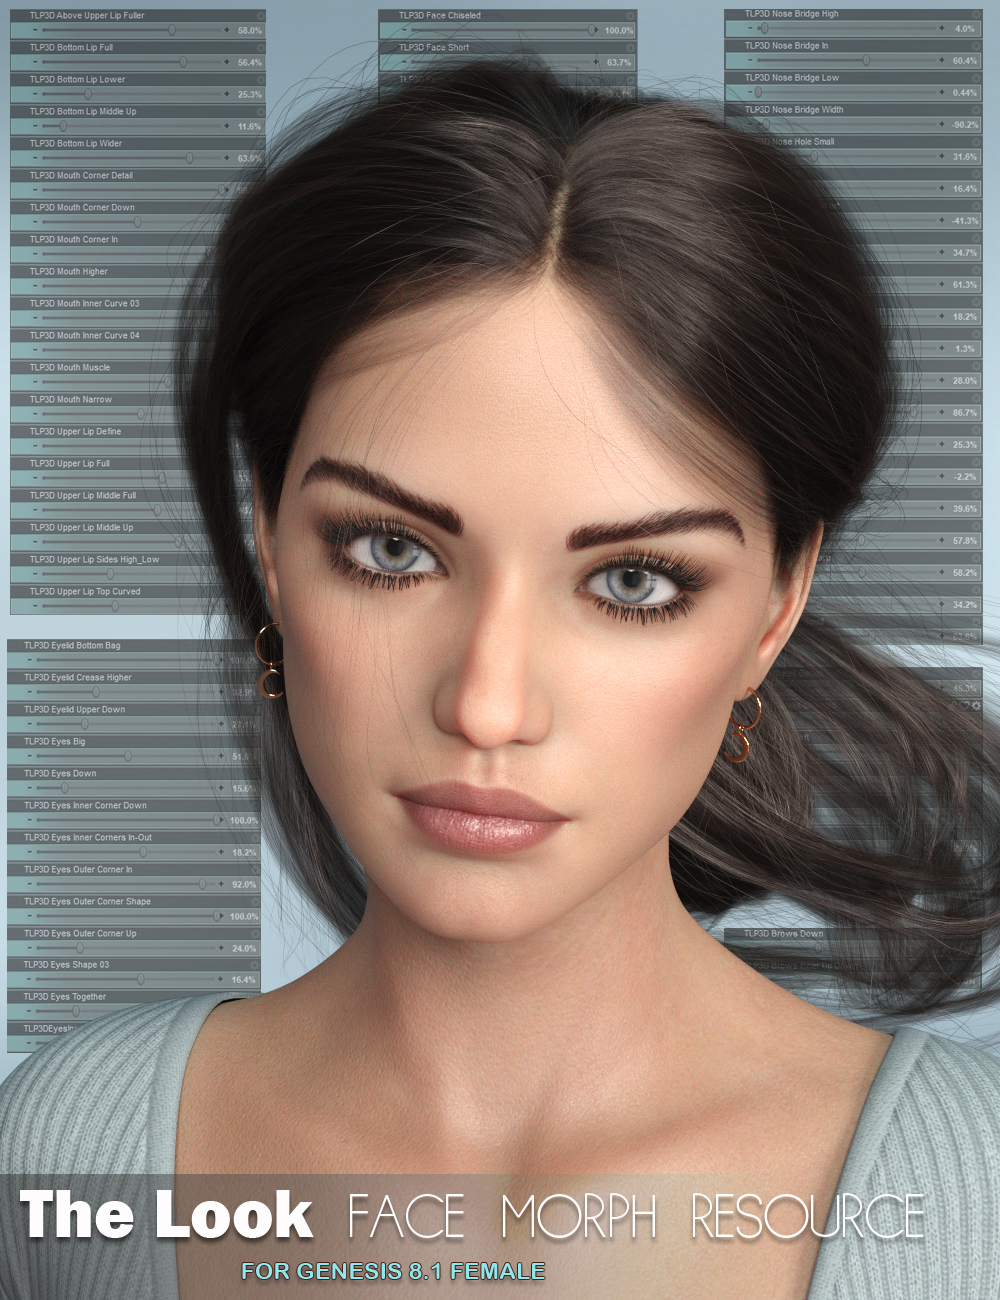 The Look Face Morph Resource for Genesis 8.1 Females by: P3Design, 3D Models by Daz 3D